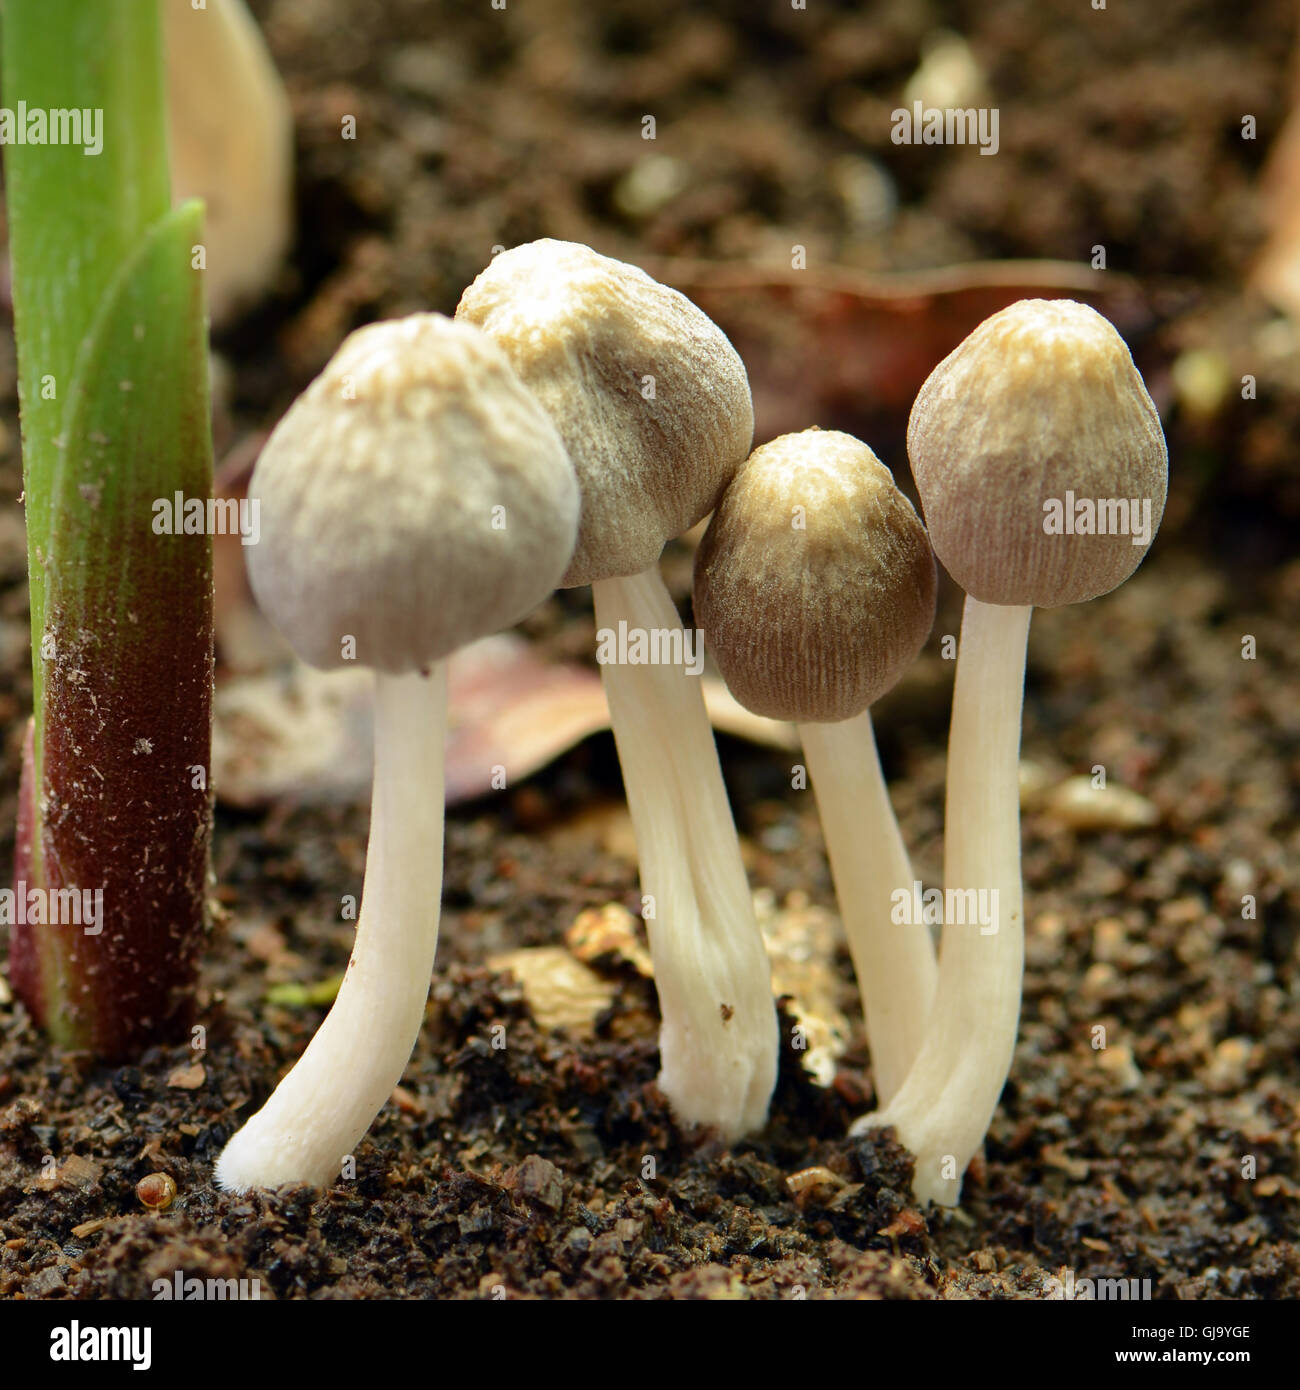 Little mushroon found on moist land in rainny season. - Stock Image